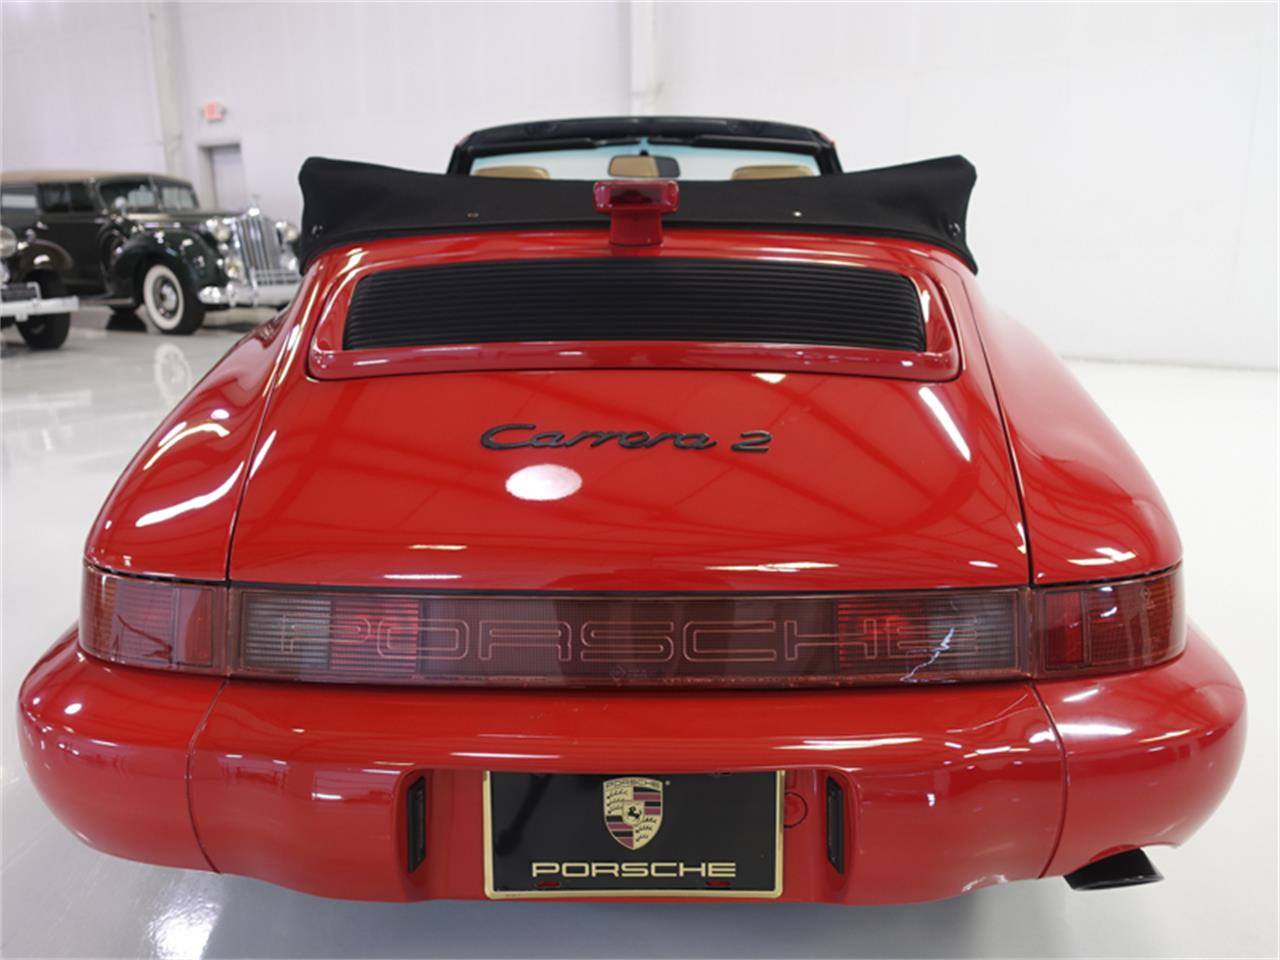 Large Picture of 1990 Porsche 964 Carrera 2 located in Missouri Offered by Daniel Schmitt & Co. - PVNV